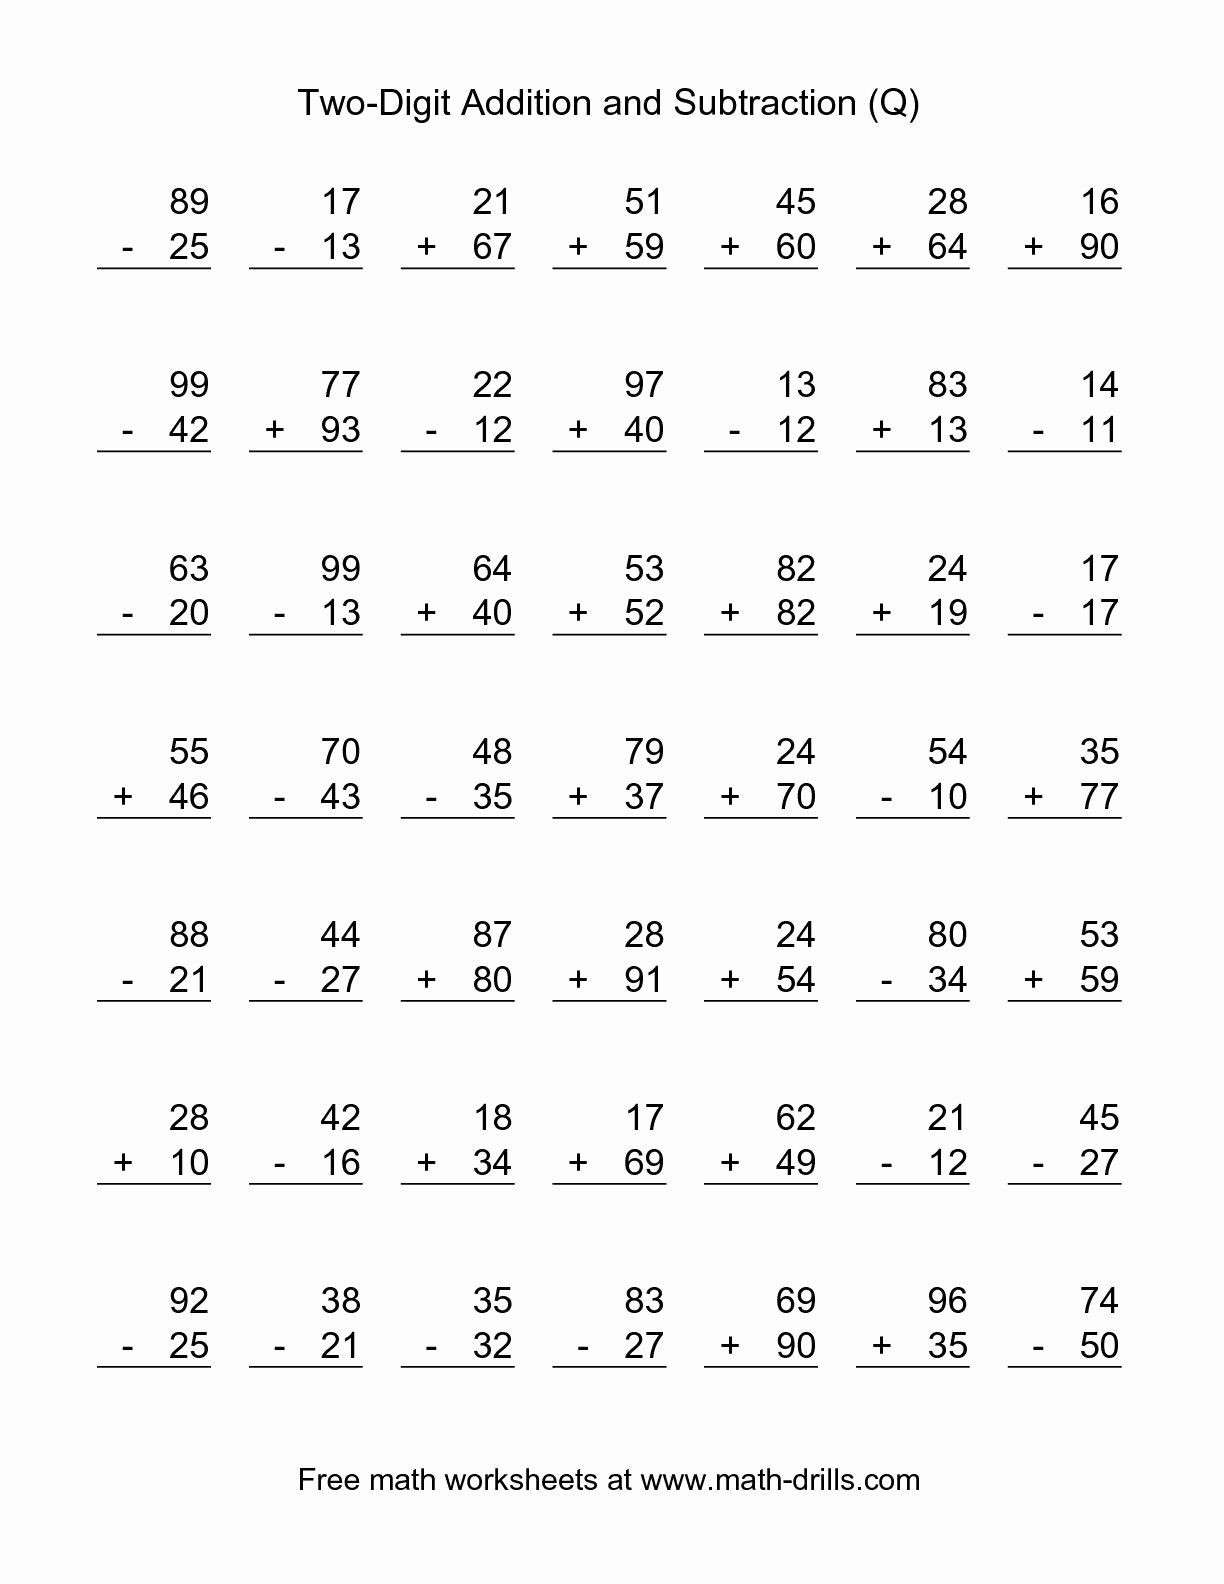 Saxon Math Second Grade Worksheets 2nd Grade Math Worksheets Printable Second Free for John